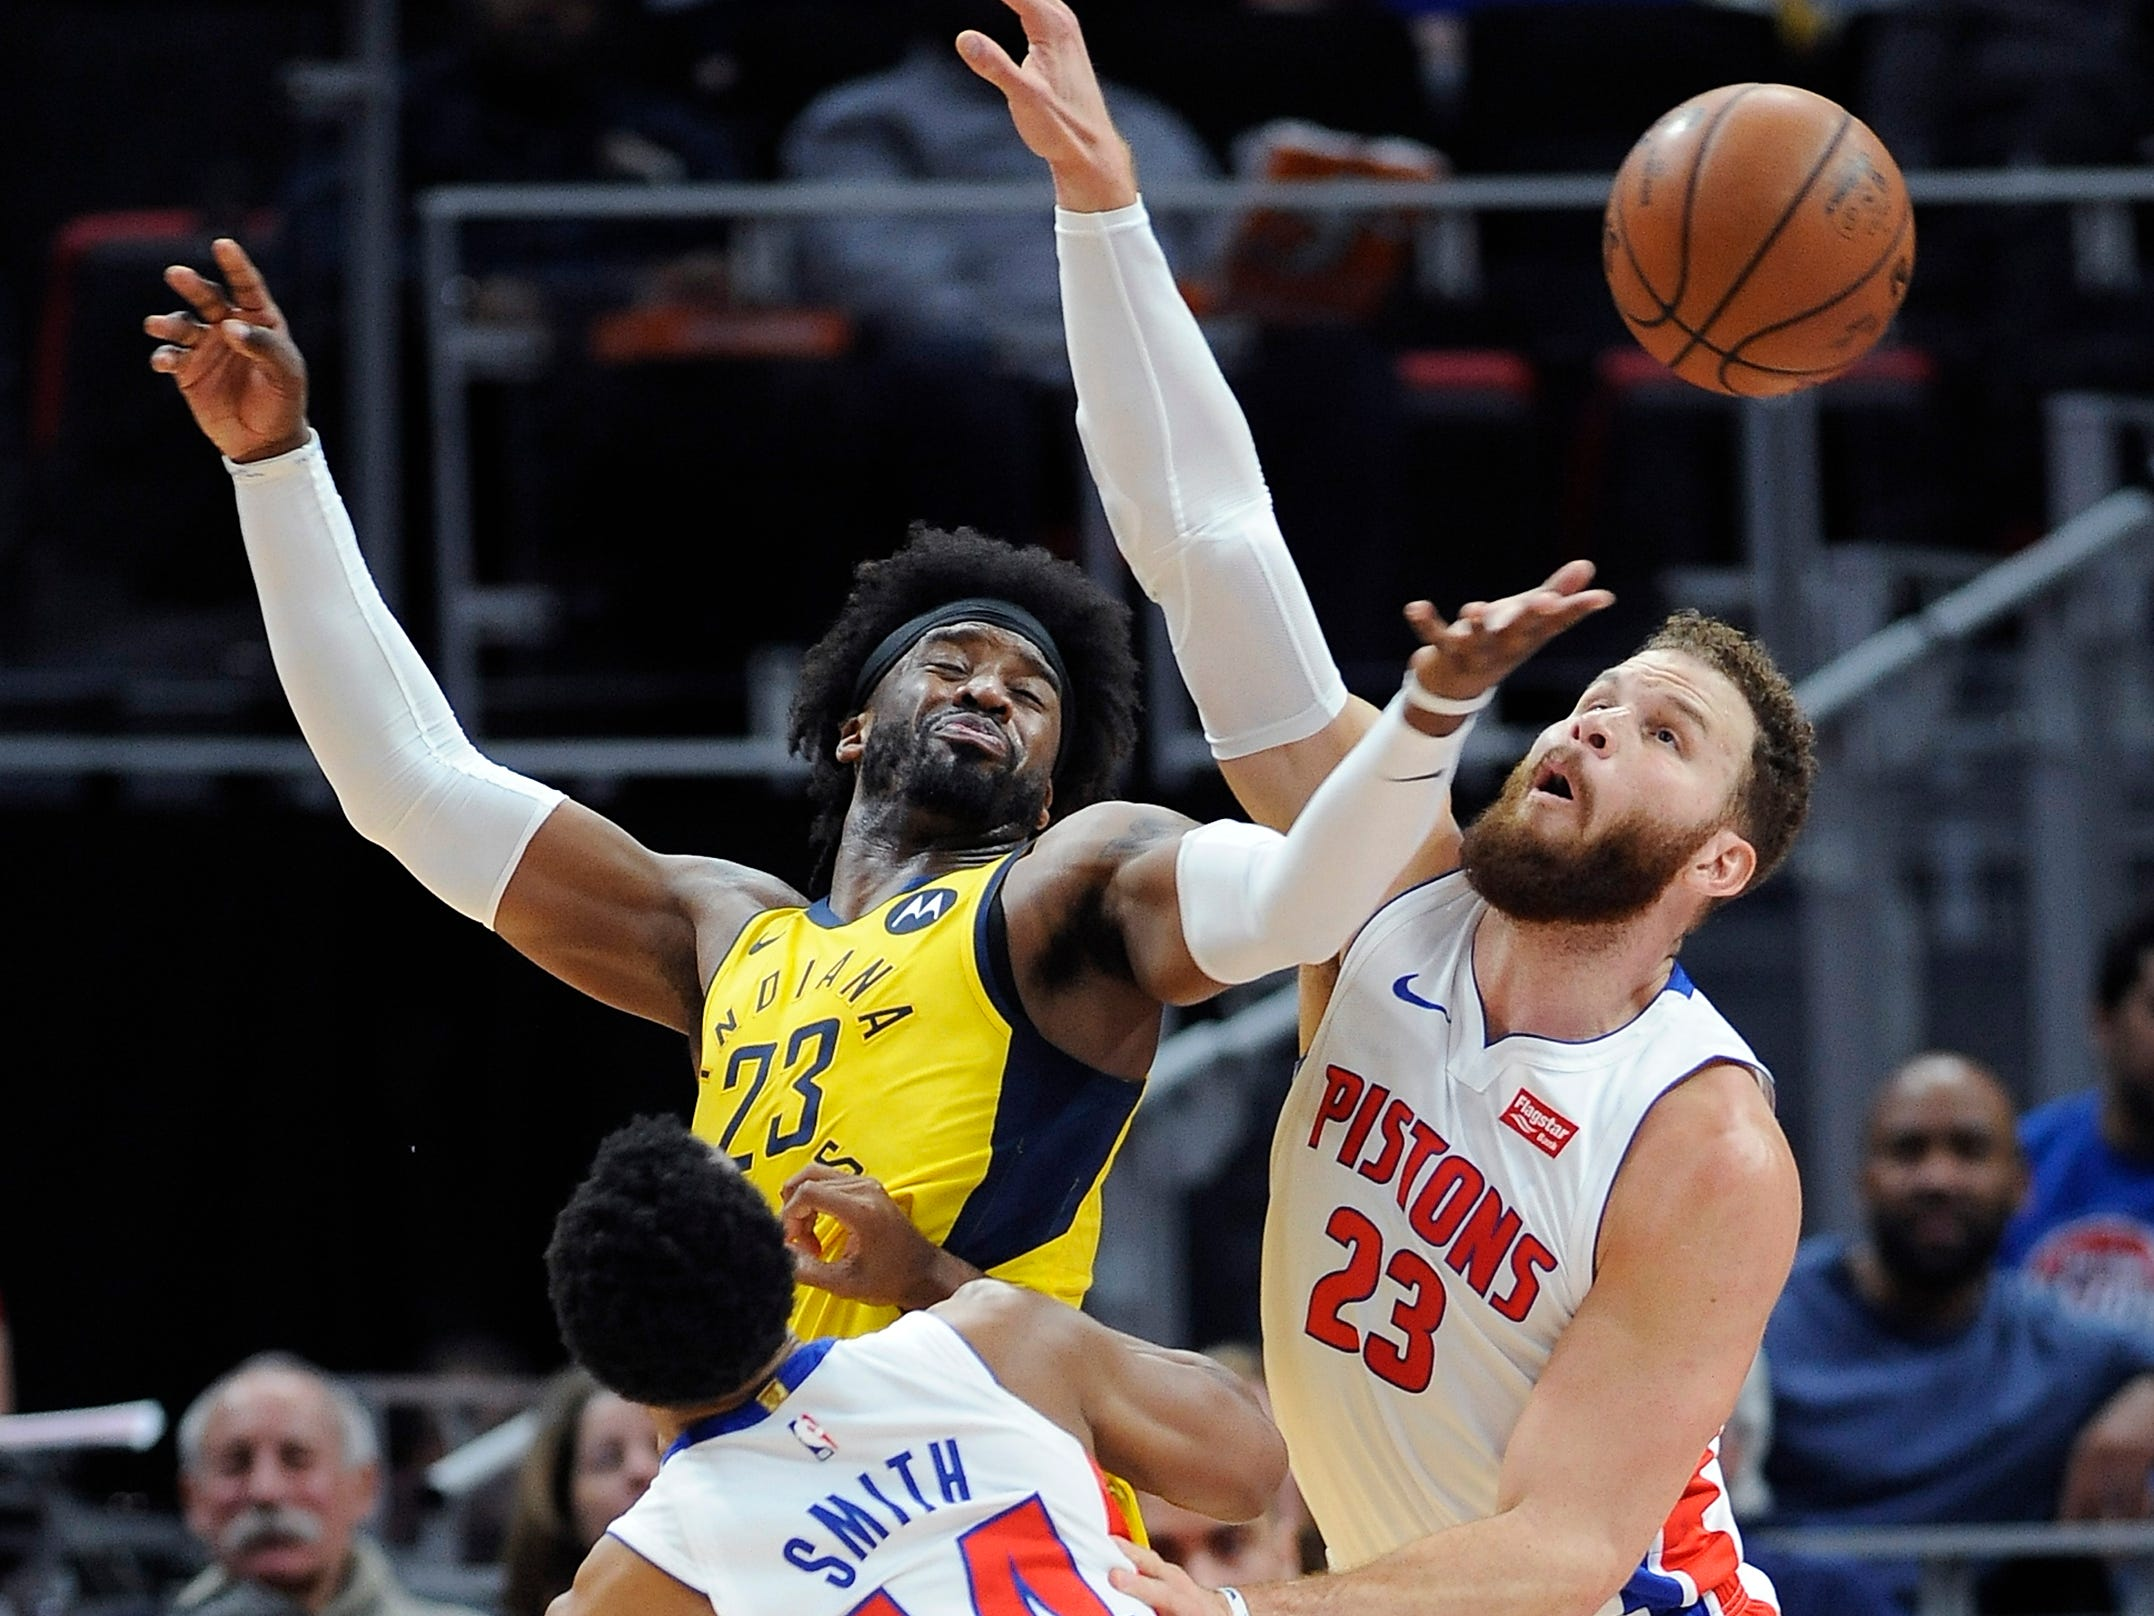 Indiana's Wesley Matthews battles Detroit's Blake Griffin for a loose ball in the first quarter. Griffin had 20 points, 10 rebounds and 10 assists in a 113-109 victory Monday, Feb. 25, 2019, at Little Caesars Arena in Detroit.